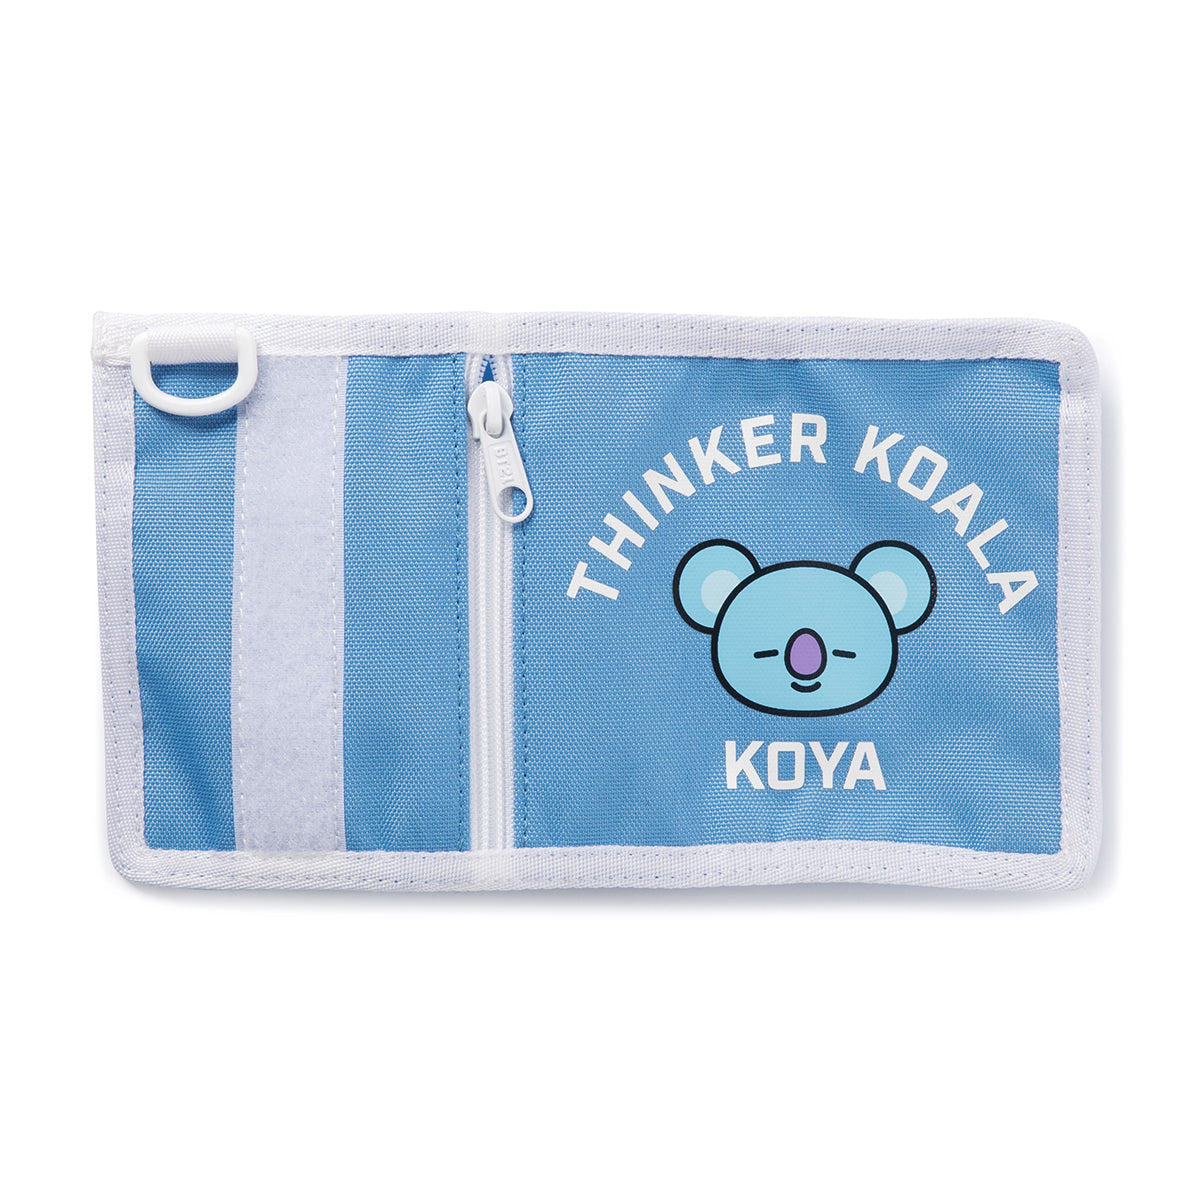 BT21 KOYA Folding Bifold Wallet